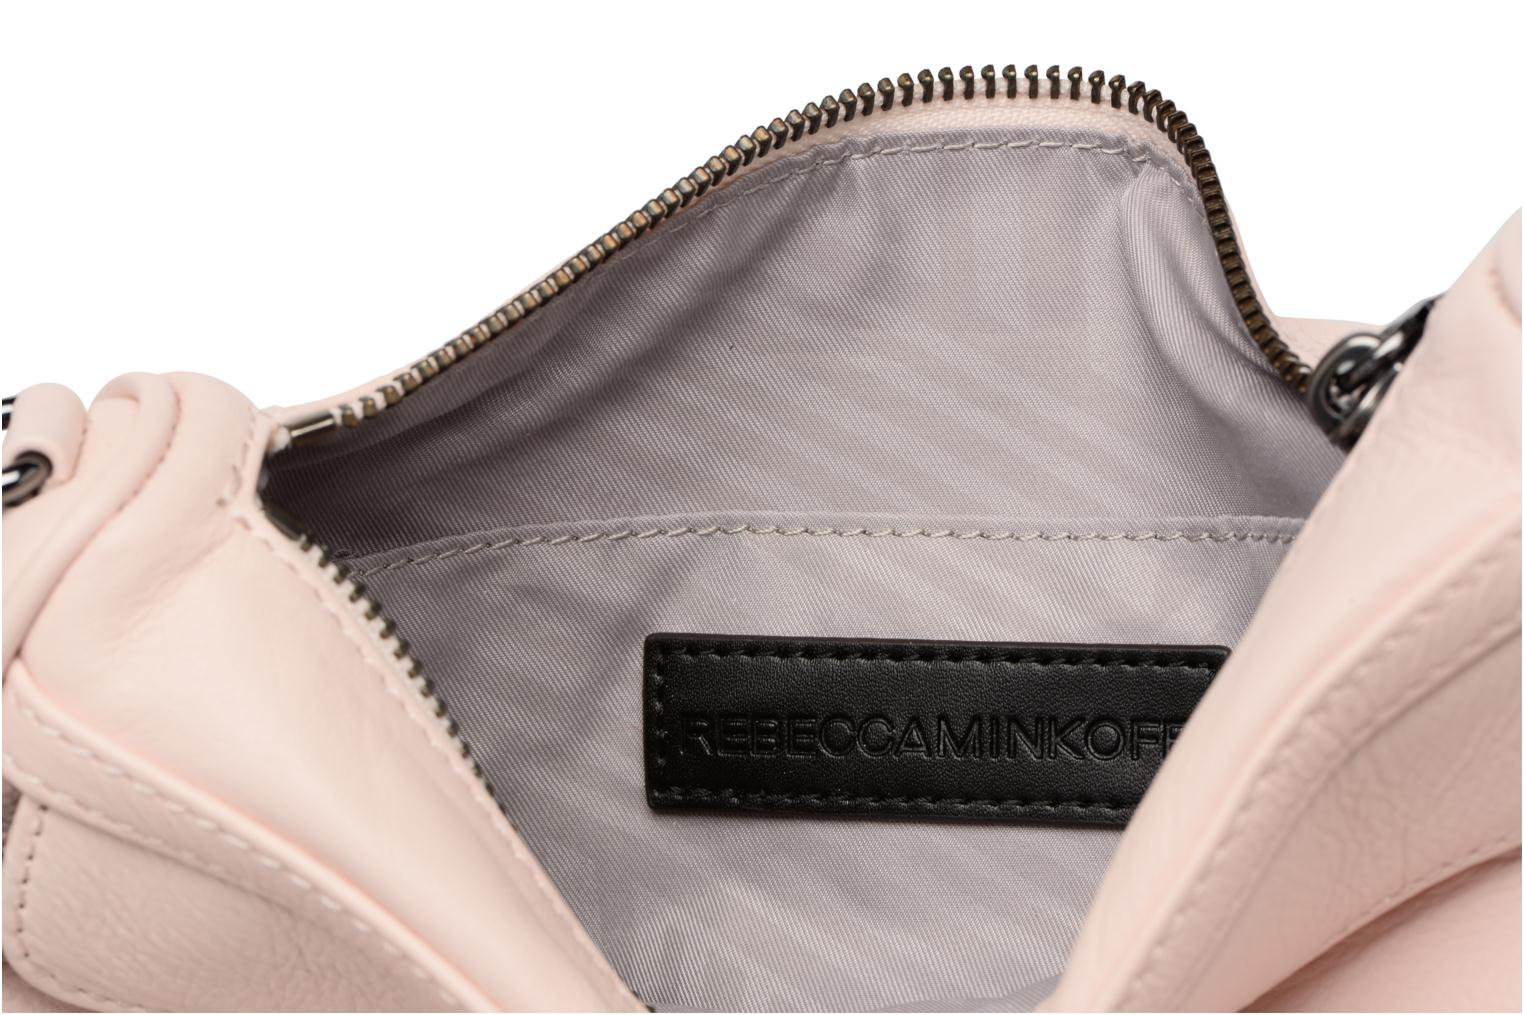 Handbags Rebecca Minkoff Mini MAC Pink back view